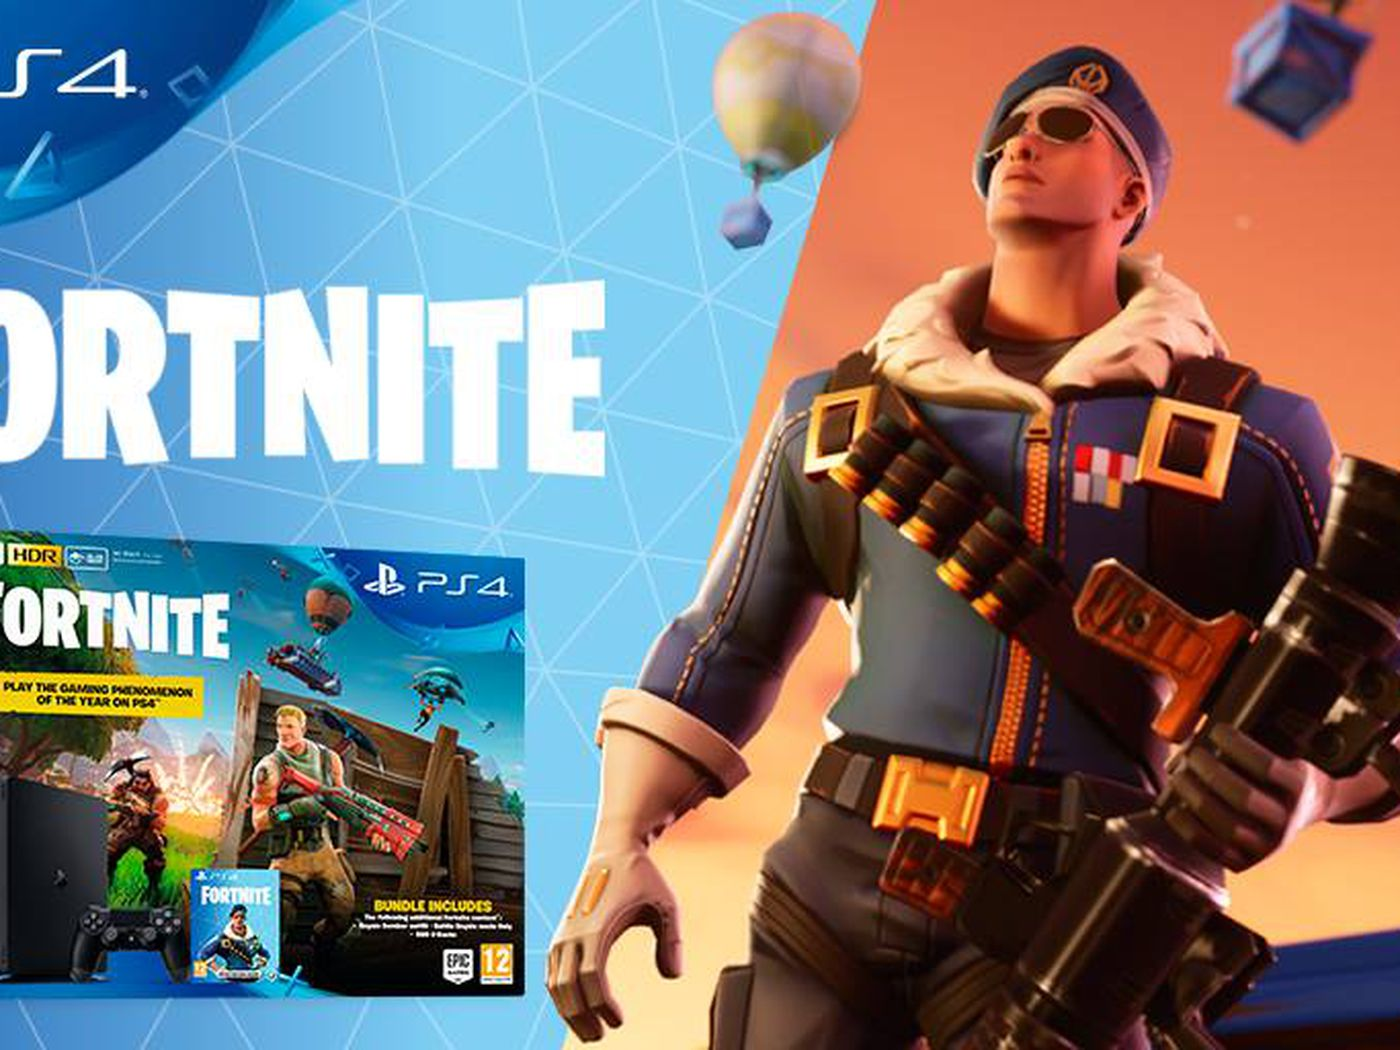 Fortnite PS4 bundle to include new skin: Royale Bomber - Polygon